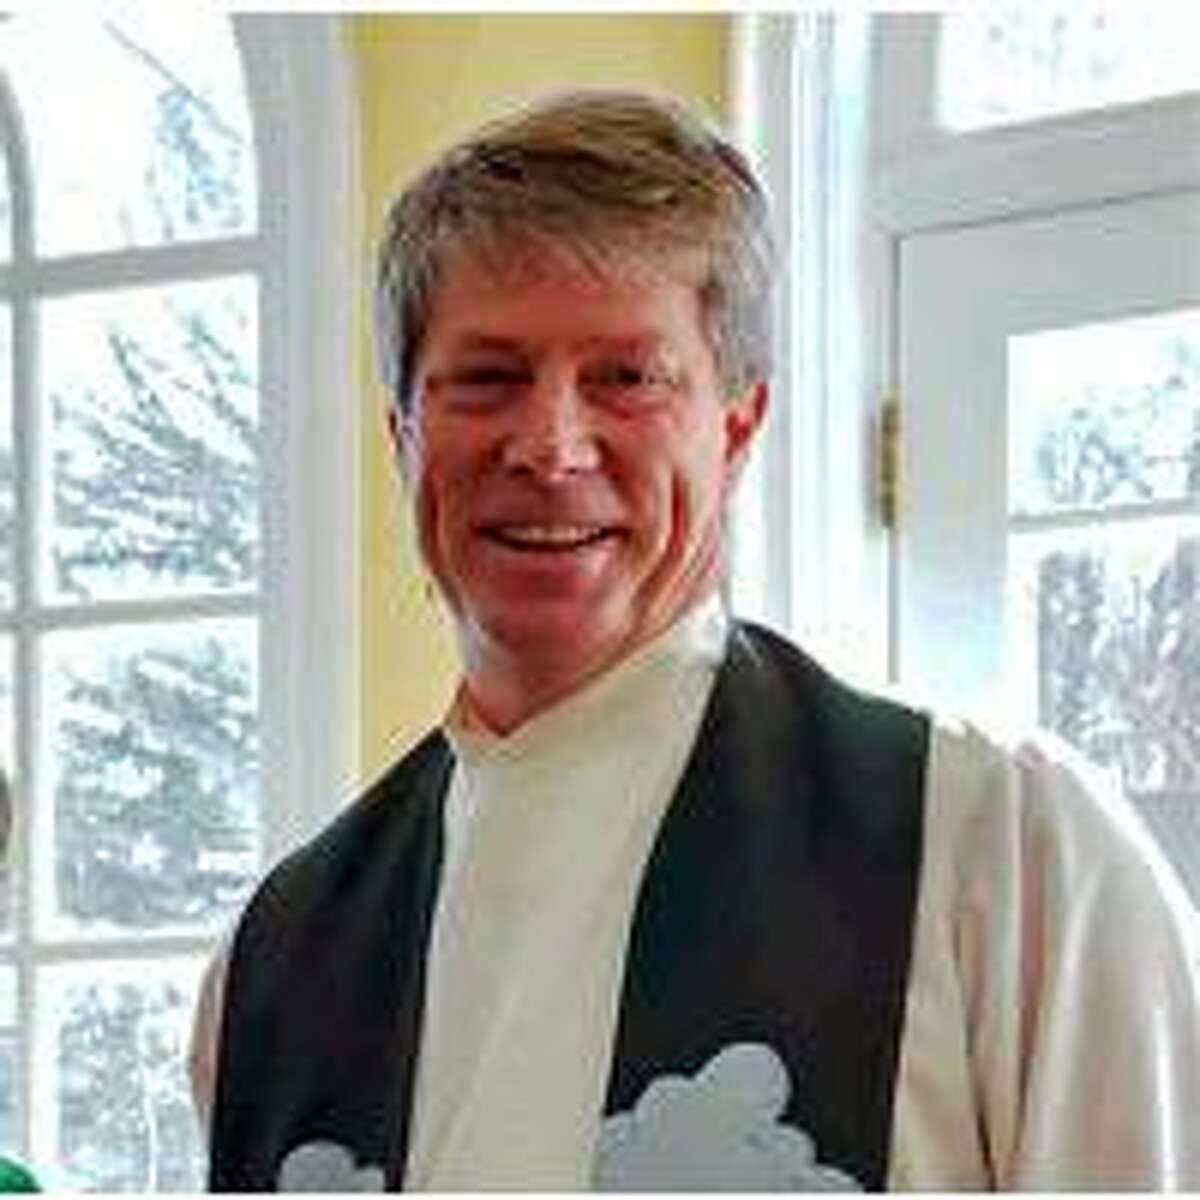 The Rev. Dr. Bill Pfohl, Jesse Lee Memorial United Methodist Church in Ridgefield senior pastor